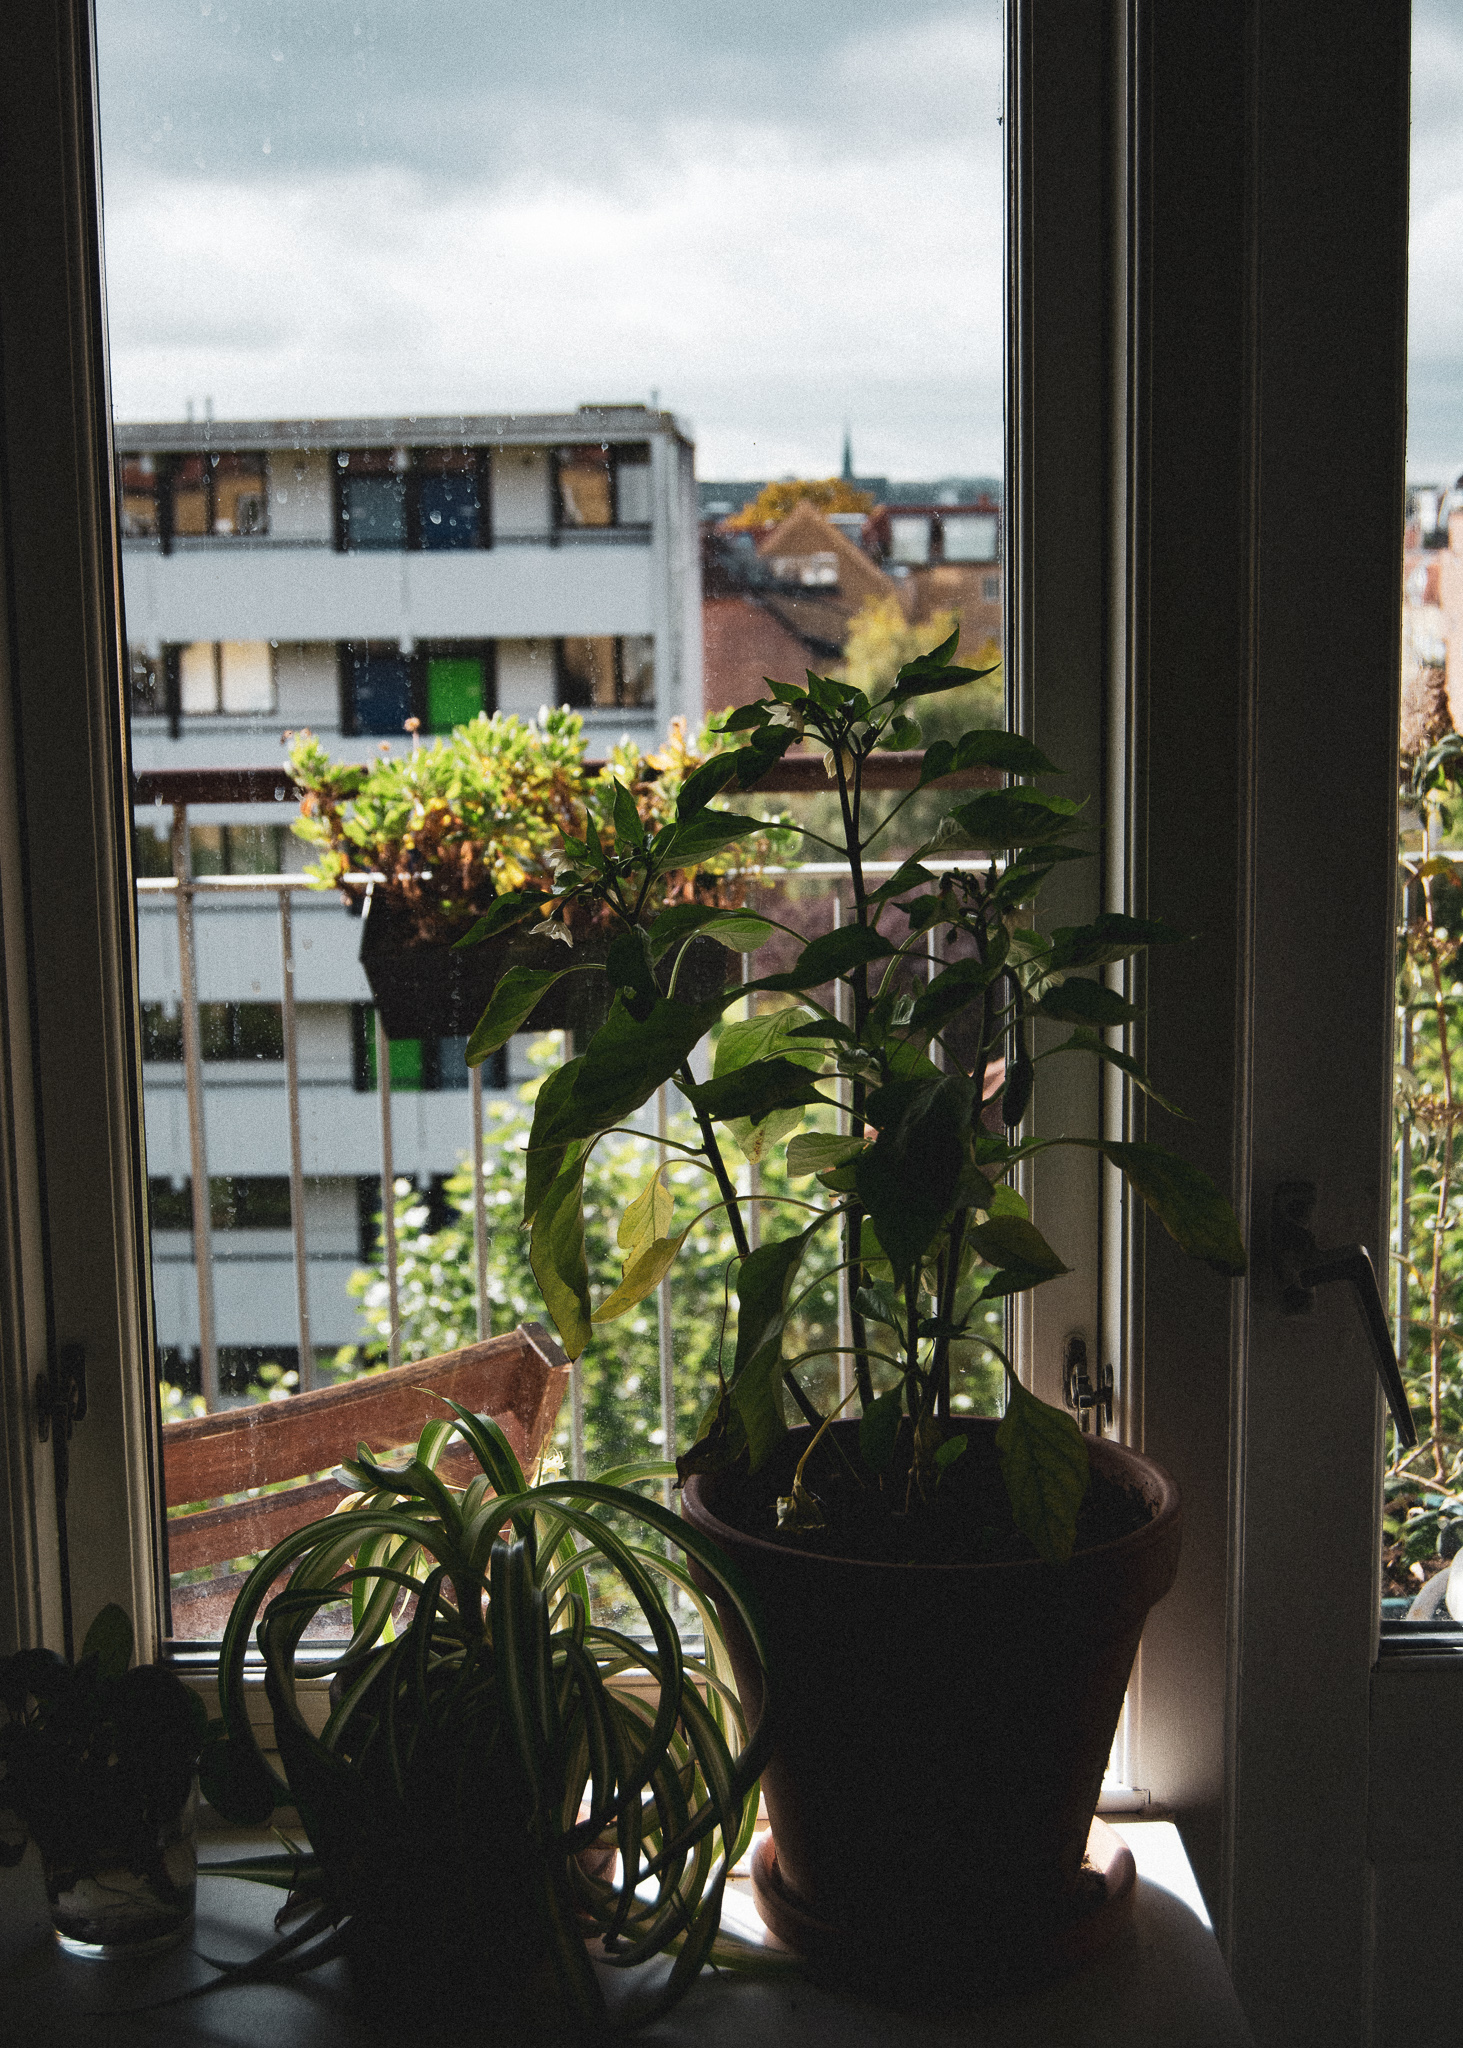 udsigt, by, huse, vindue, lejlighed, plante, bygning, kompleks, altan, view, city, houses, window, apartment, plant, building, balcony